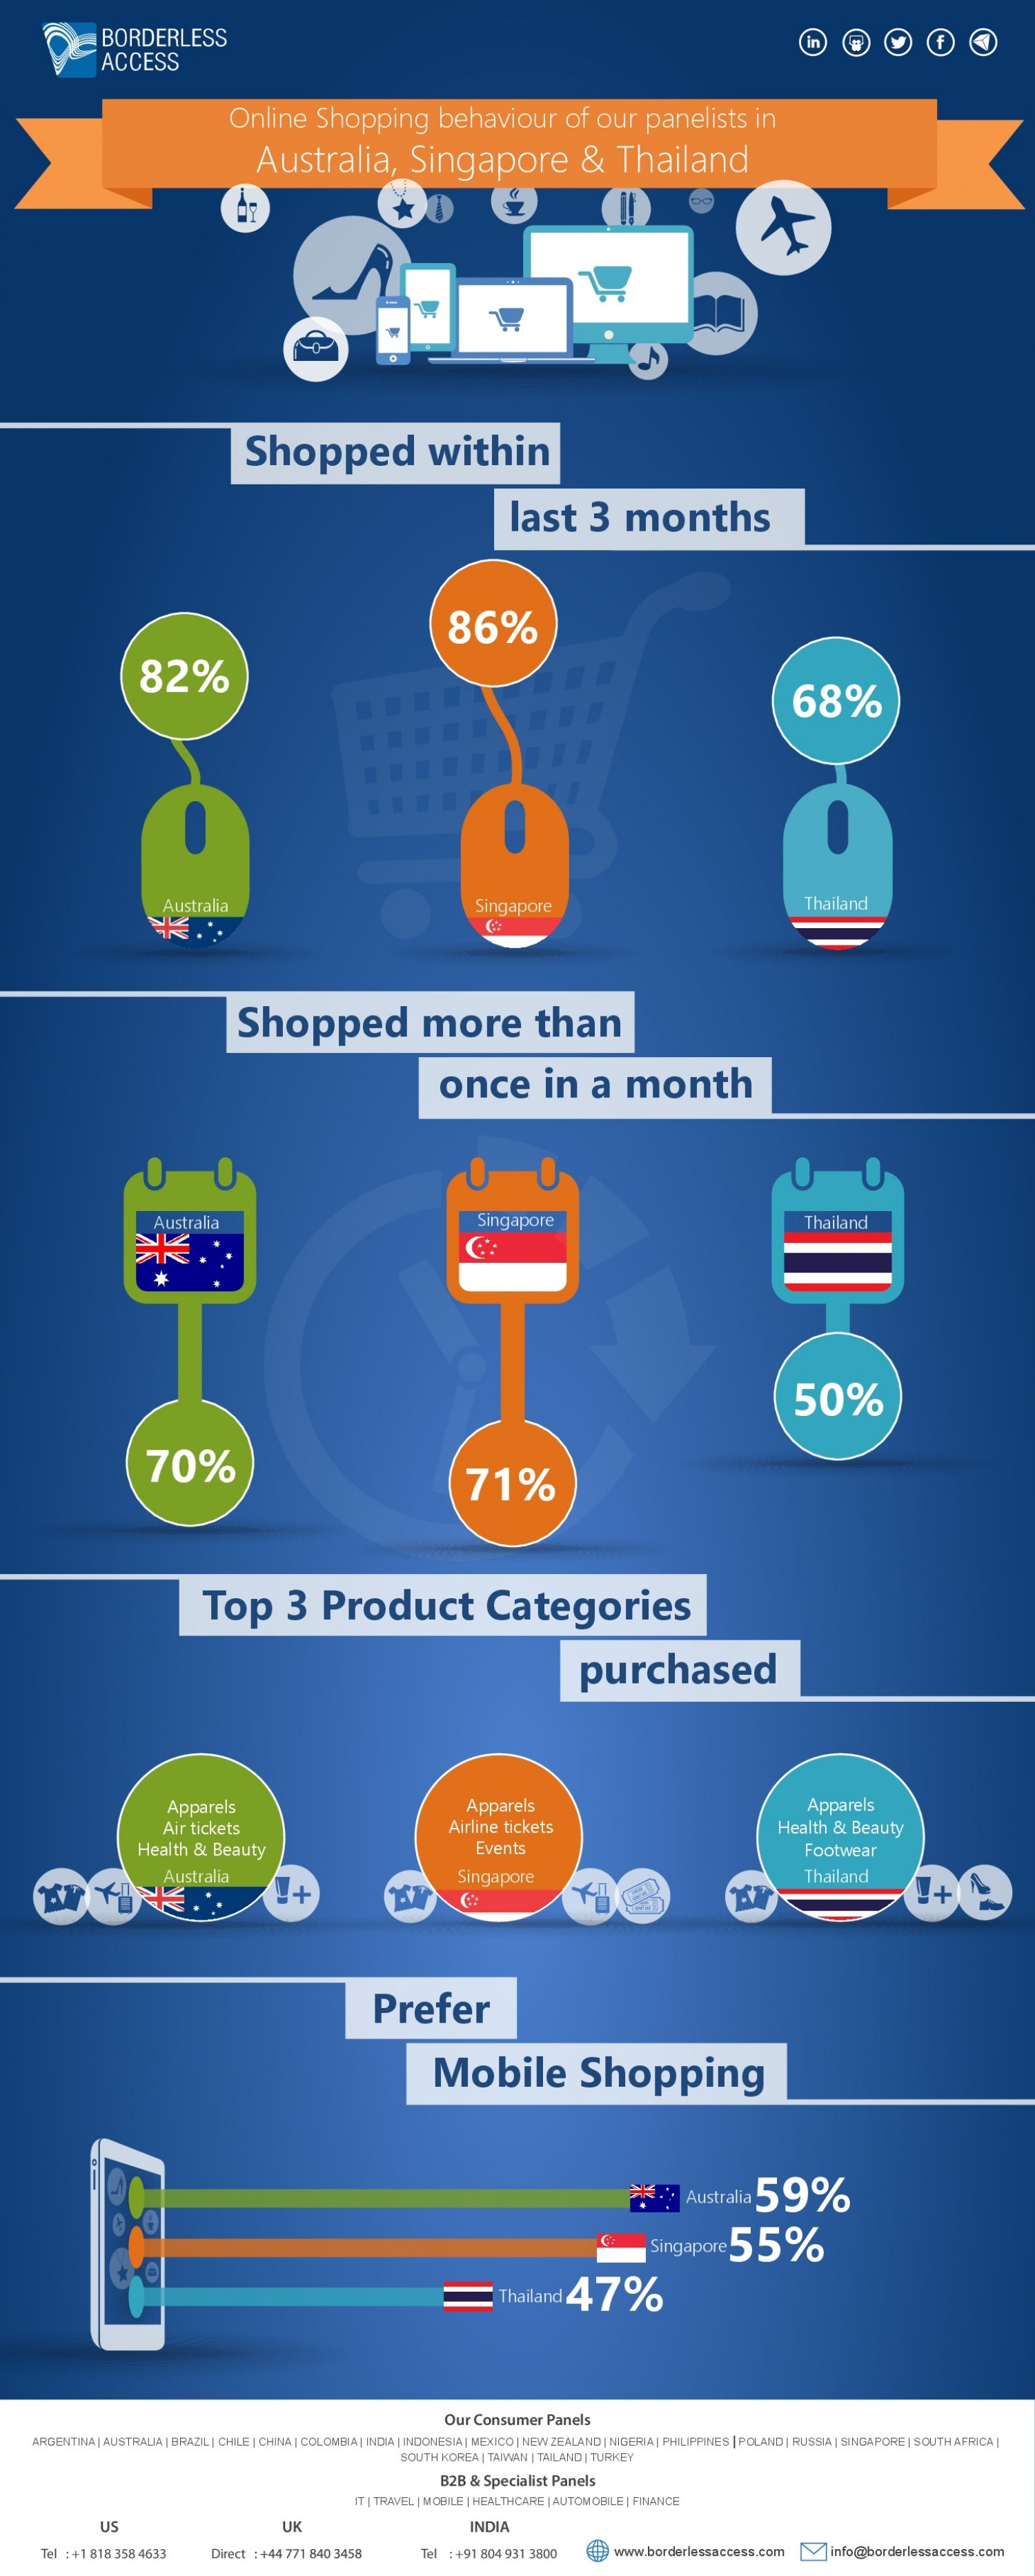 Online Australian Shopping A Snapshot Of Online Shopping Habits In Australia Singapore And